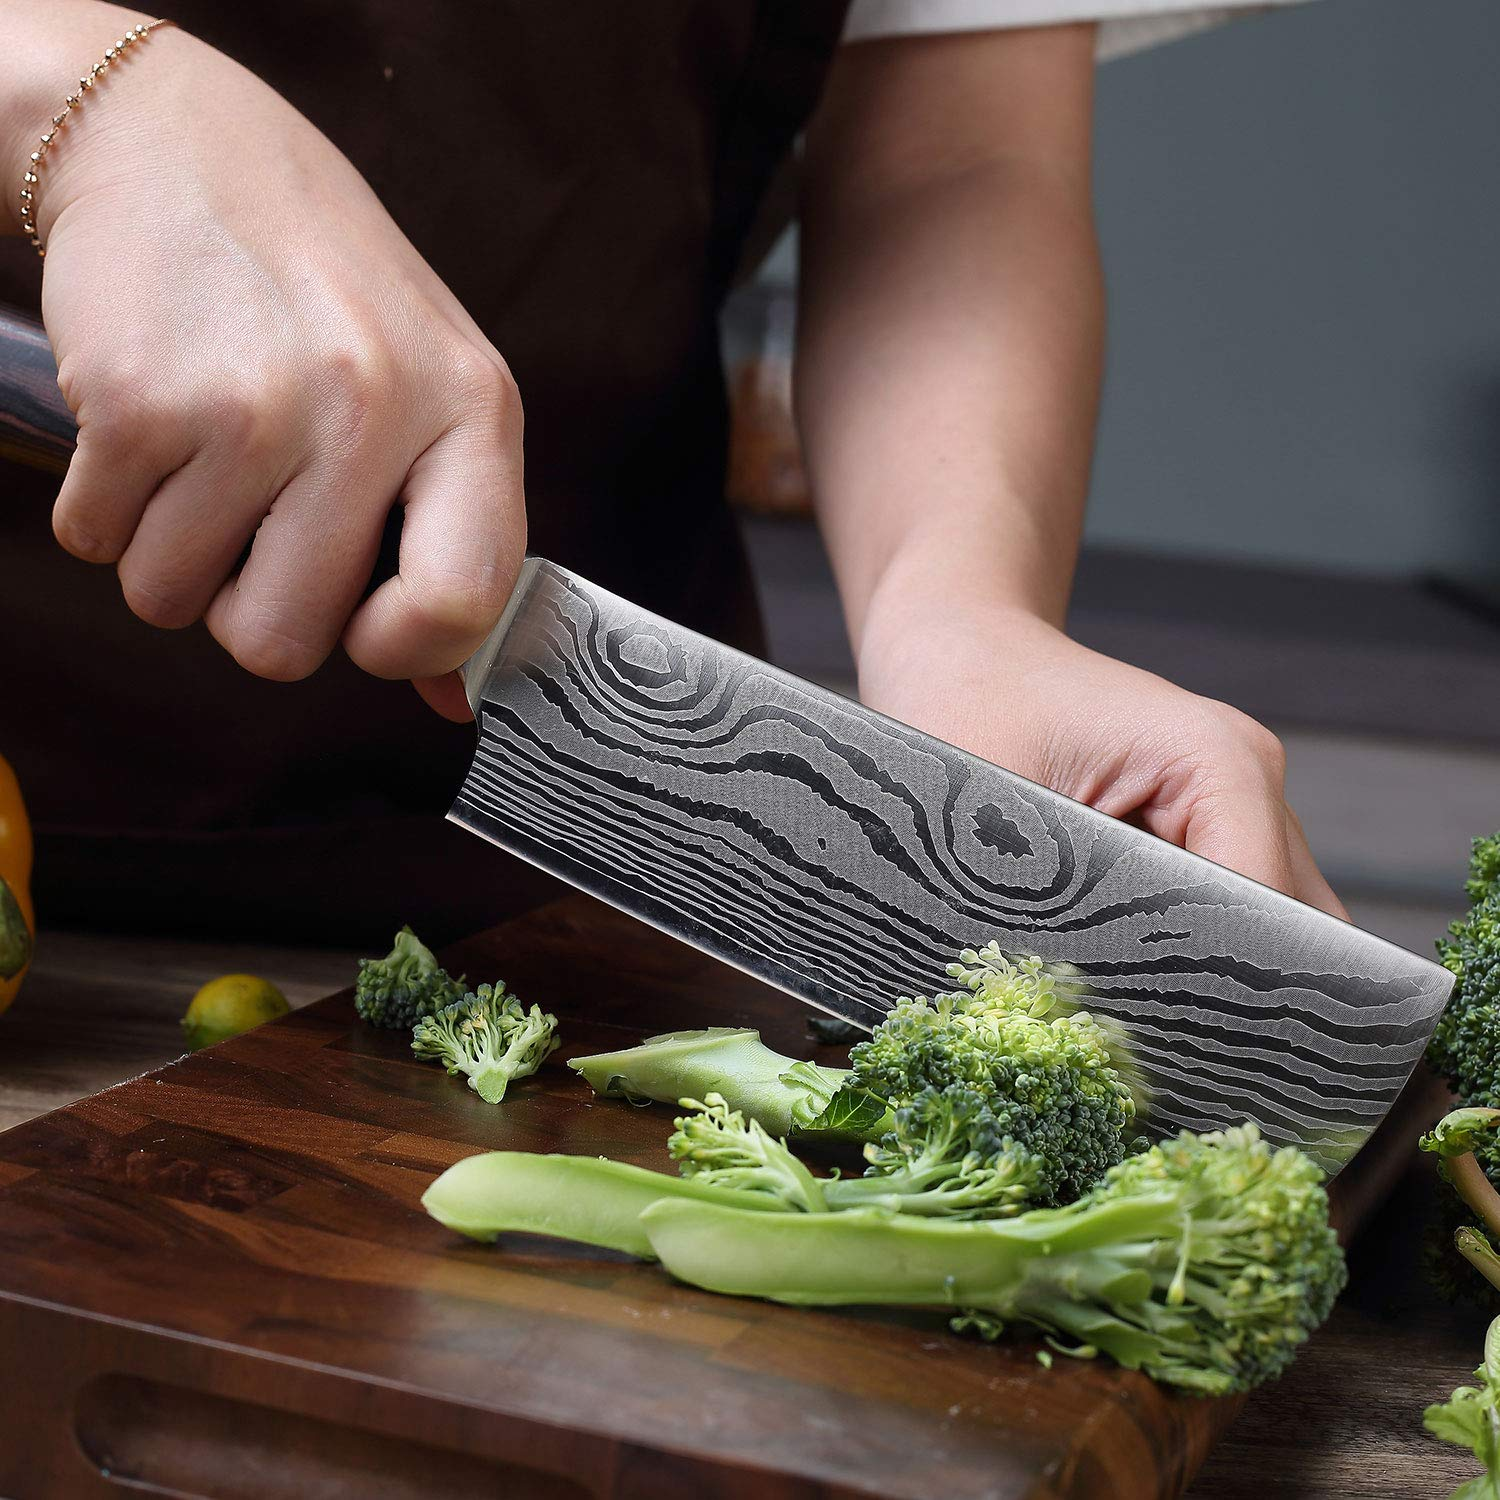 Cleaver Knife - PAUDIN 7 inch Chinese Vegetable Cleaver Kitchen Knife N6 German High Carbon Stainless Steel Meat Cleaver Knife by PAUDIN (Image #6)